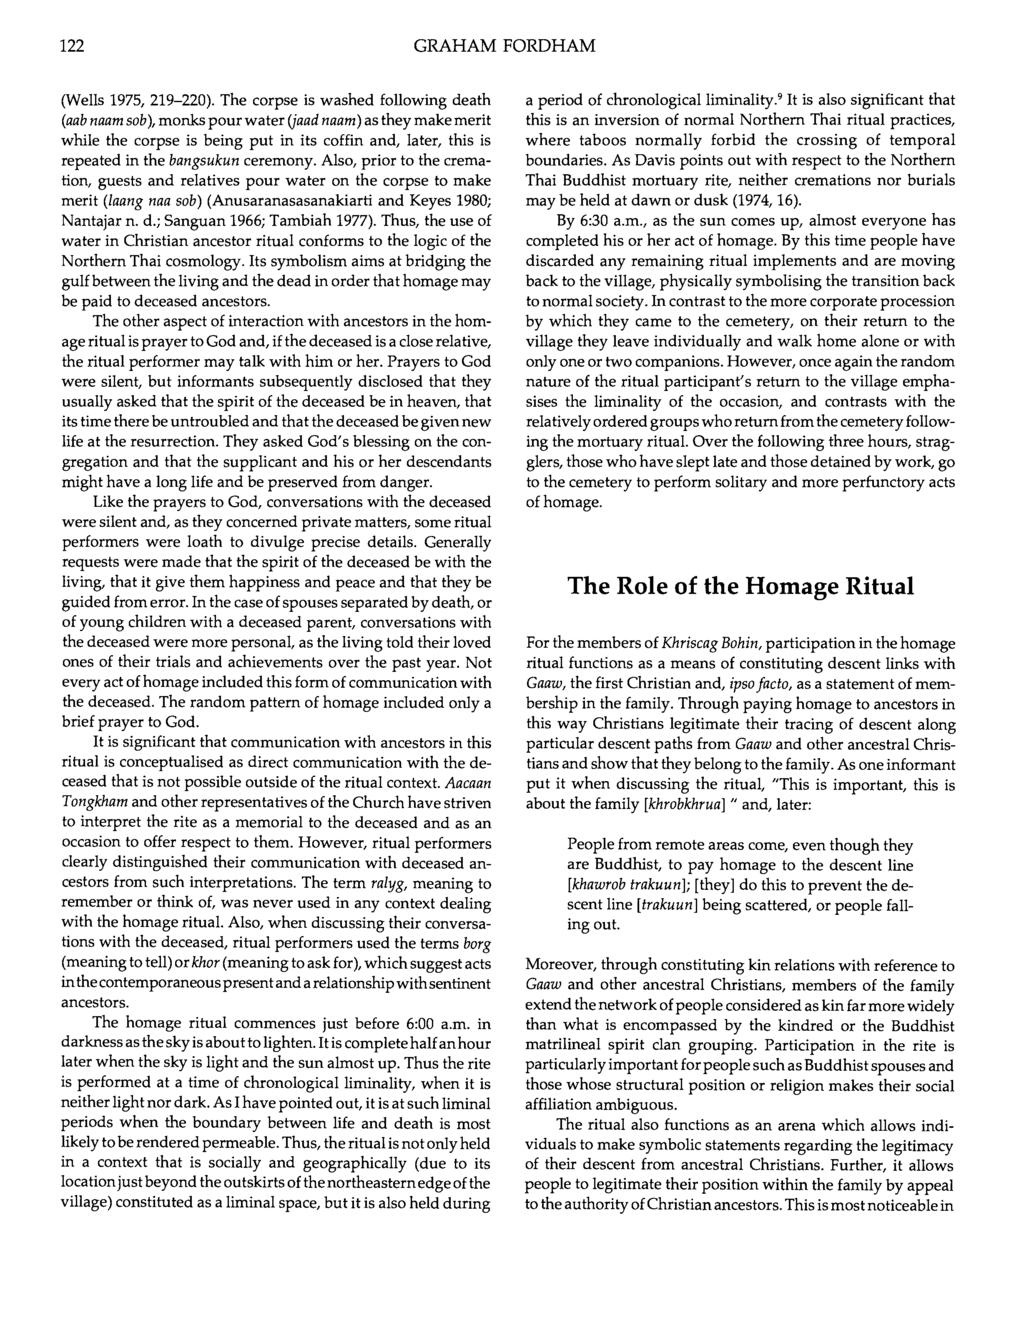 The Journal of the Siam Society - PDF